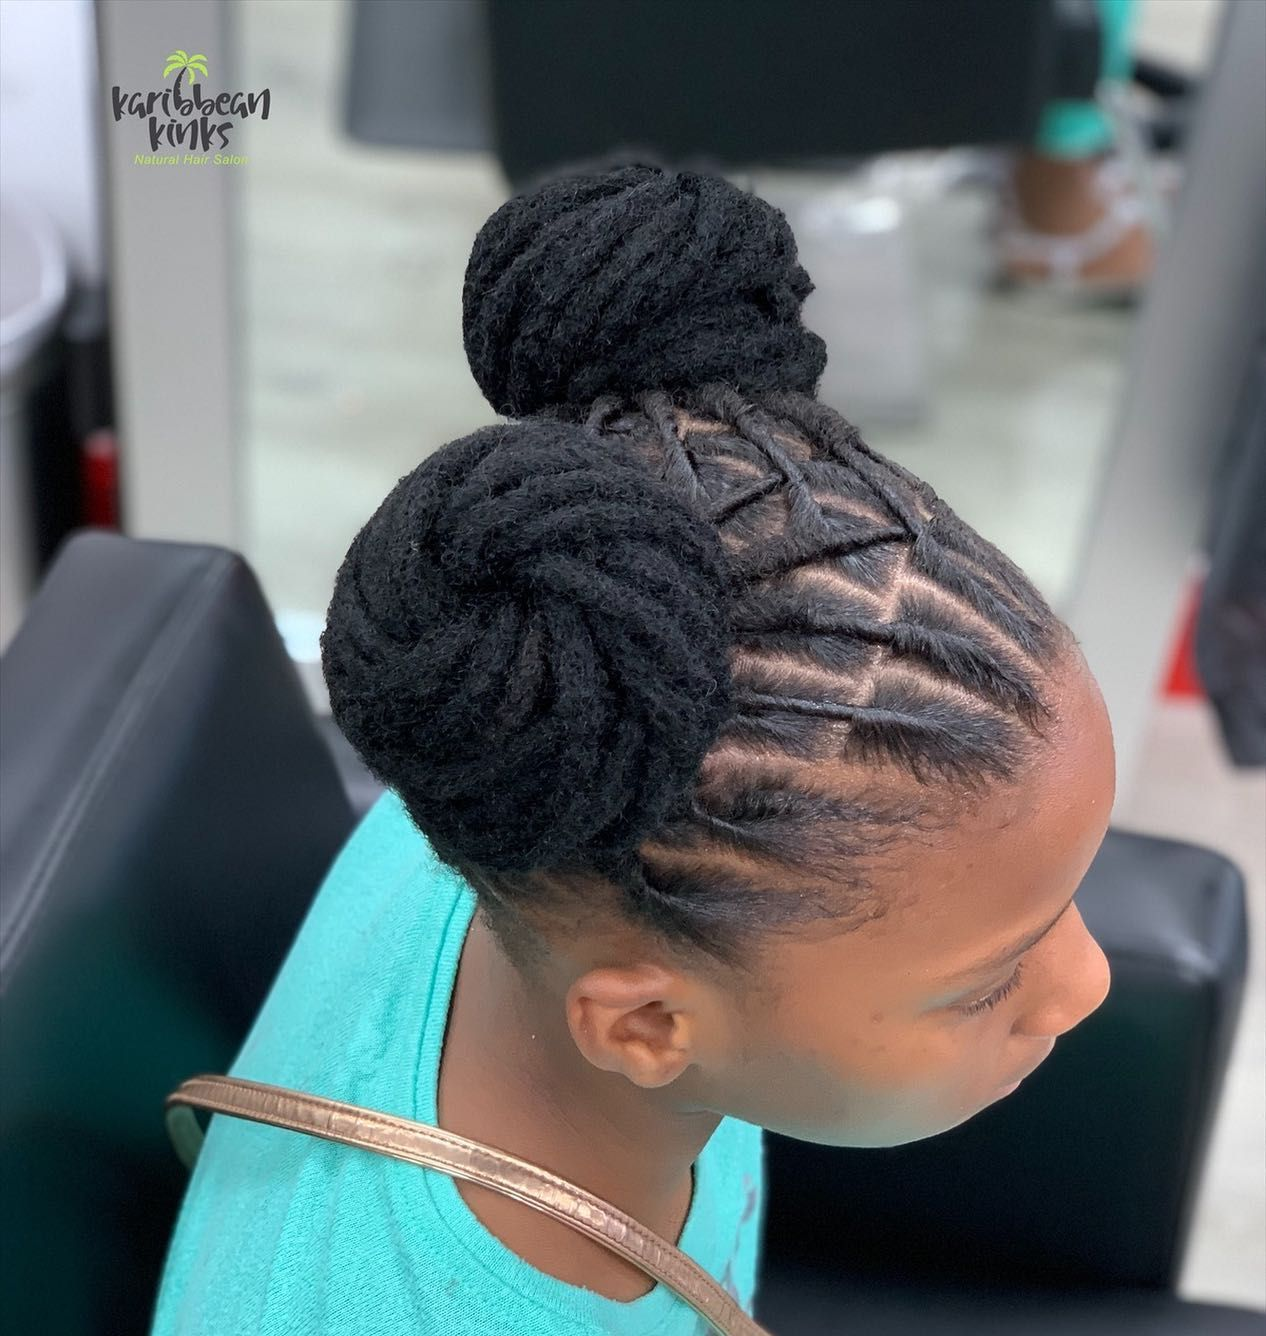 2 Buns Karibbean Kinks Natural Hair Products Available For Purchase At The Salon Or Online At In 2020 Natural Hair Salons Natural Hair Styles Loc Styles For Men